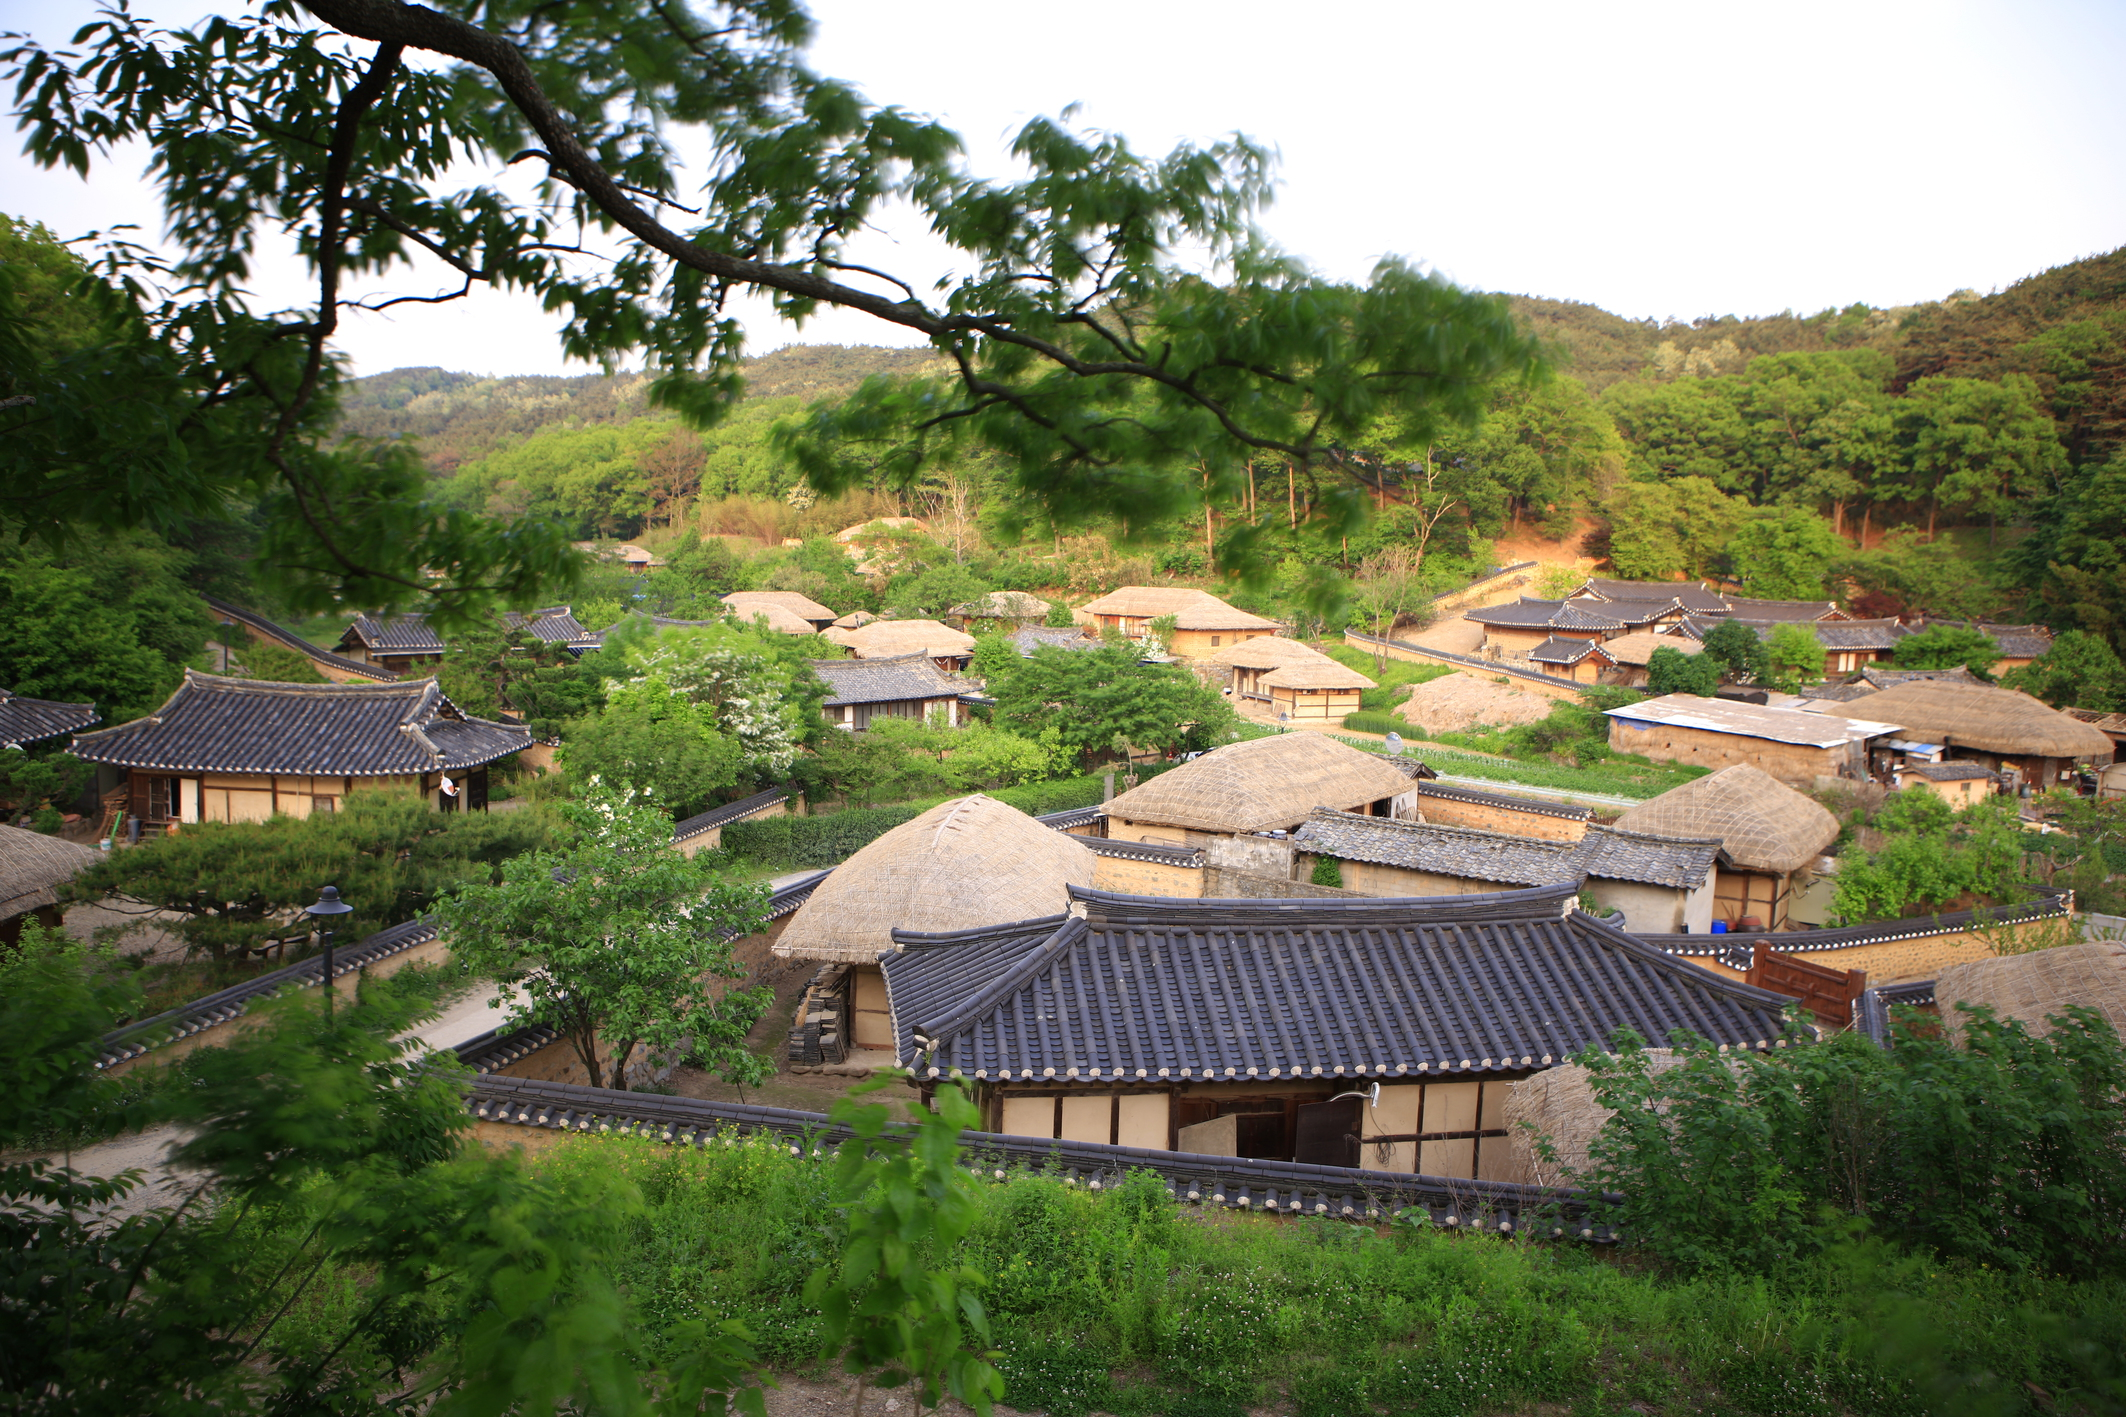 (Apr - Sep) Gyeongju UNESCO World Heritage One Day Tour - Depart from Busan